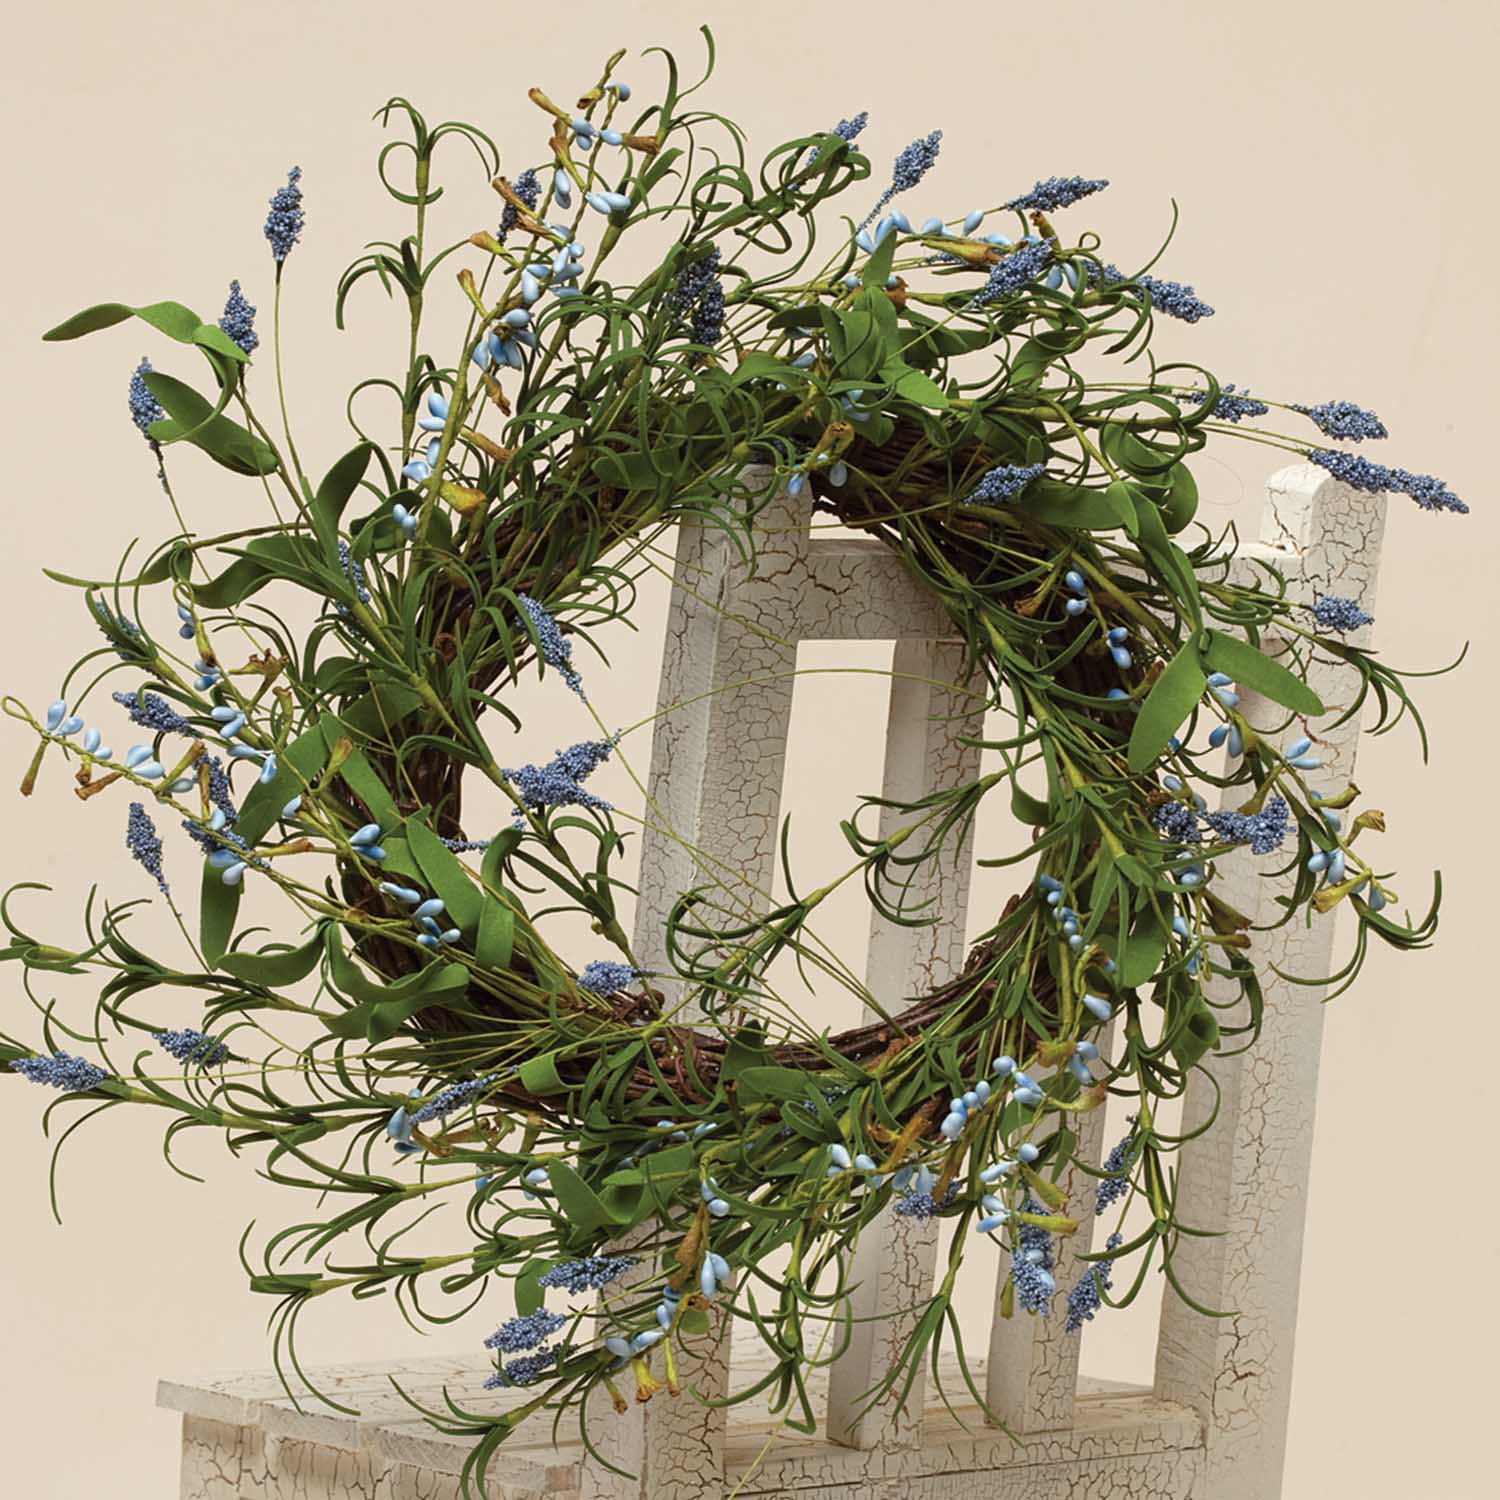 WREATH - WILD LAVENDER WREATH 14'